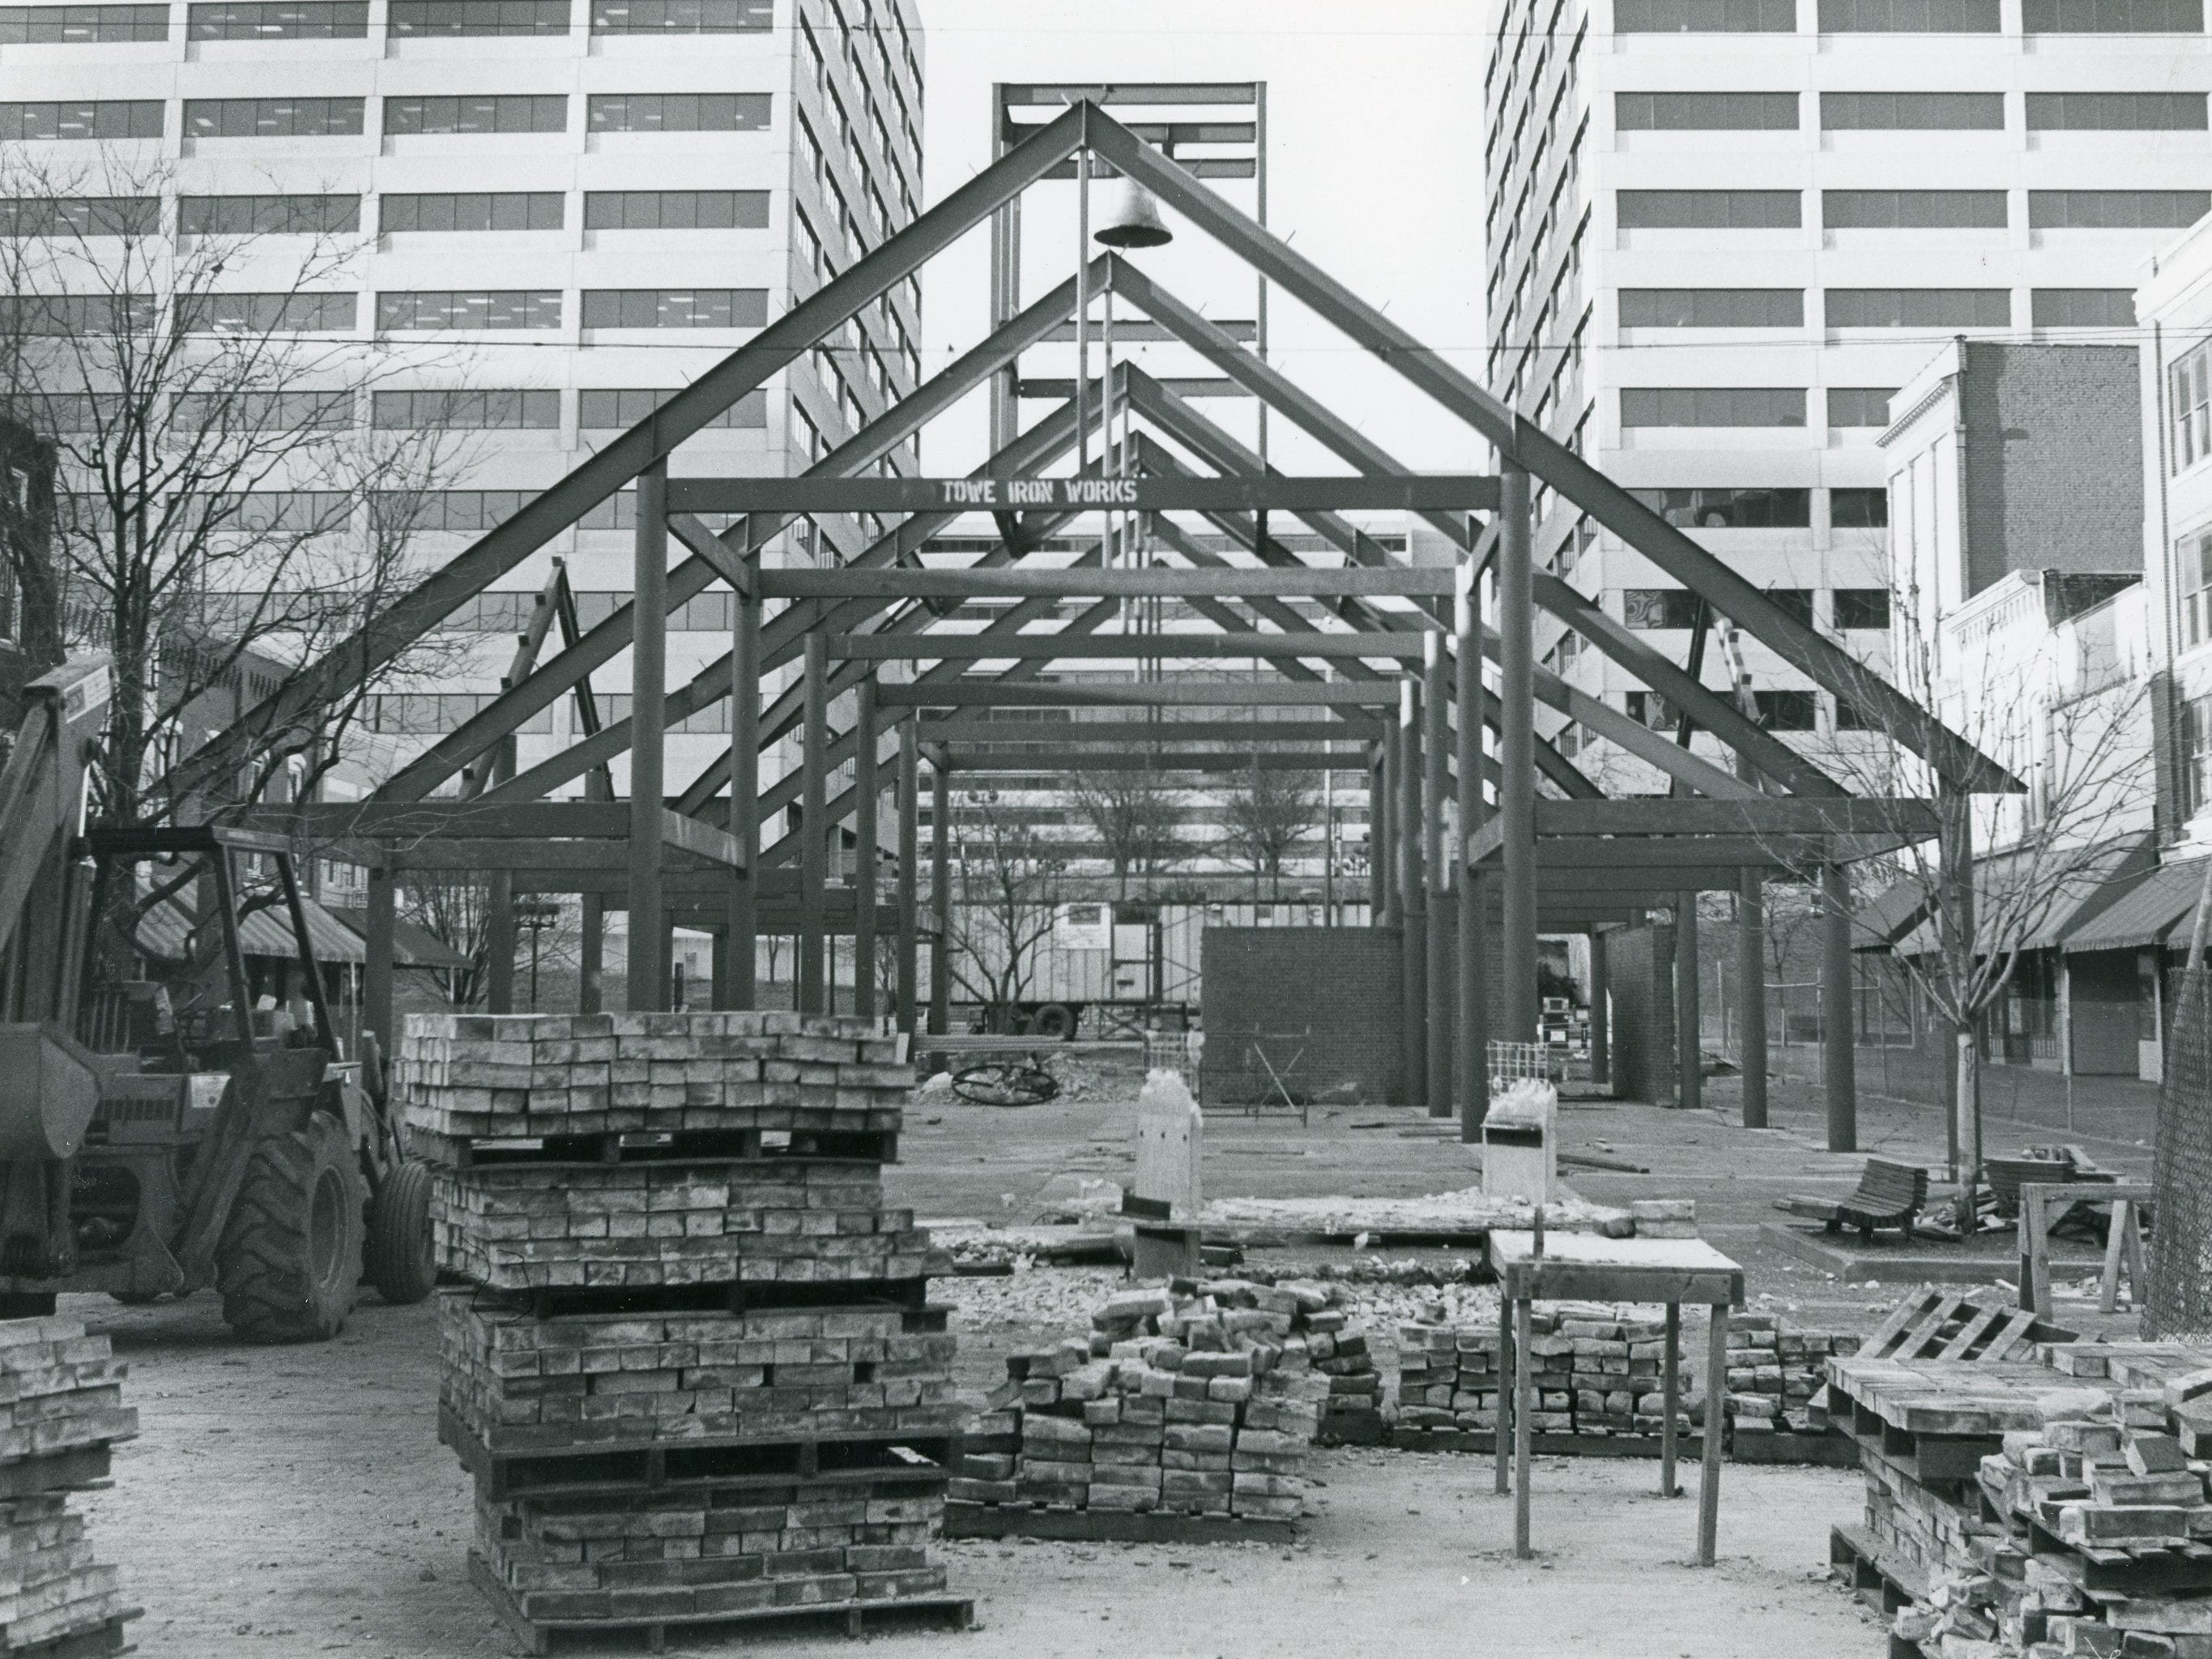 The project on Market Square, taken from Union Ave. looking toward the TVA Towers. January, 1986